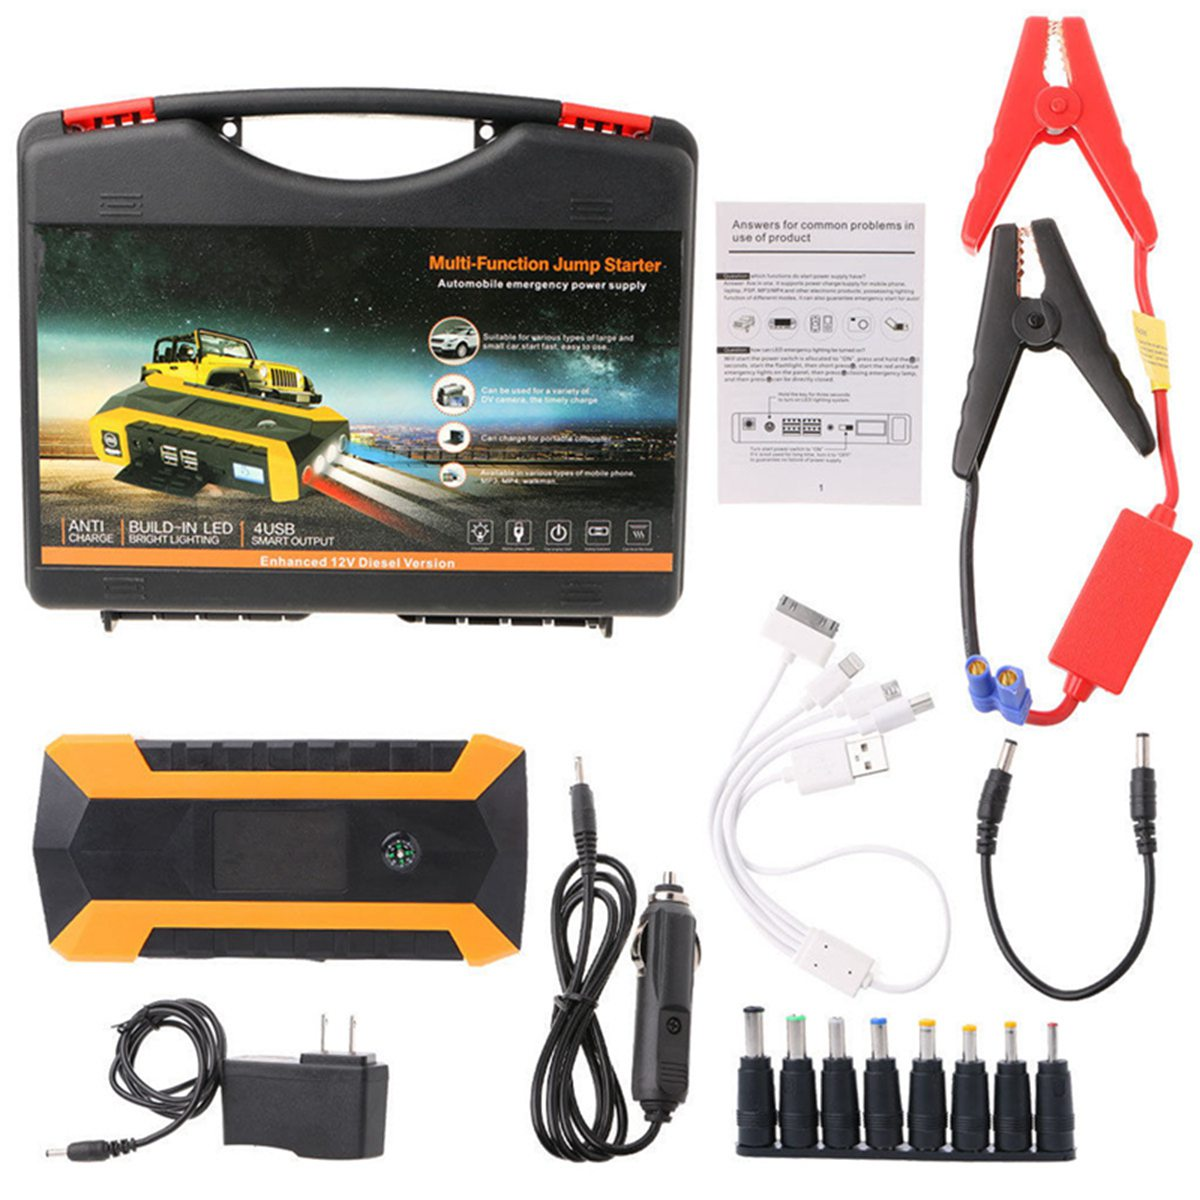 1set 89800mAh 12V 4USB Car Battery Charger Starting Car Jump Starter Booster Power Bank Tool Kit For Auto Starting Device 89800mah 600a 12v 4usb car jump starter portable car battery booster charger booster power bank starting device car